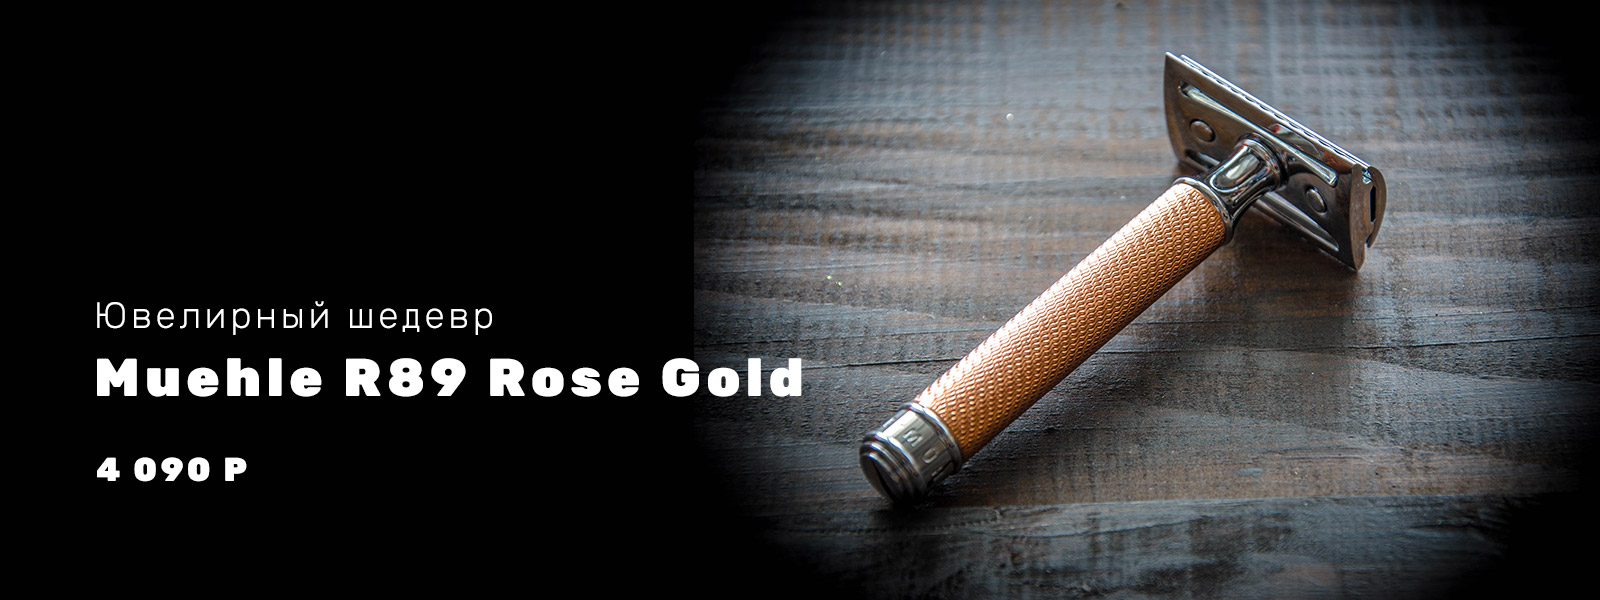 Muehle R89 Rose Gold | Max Moore